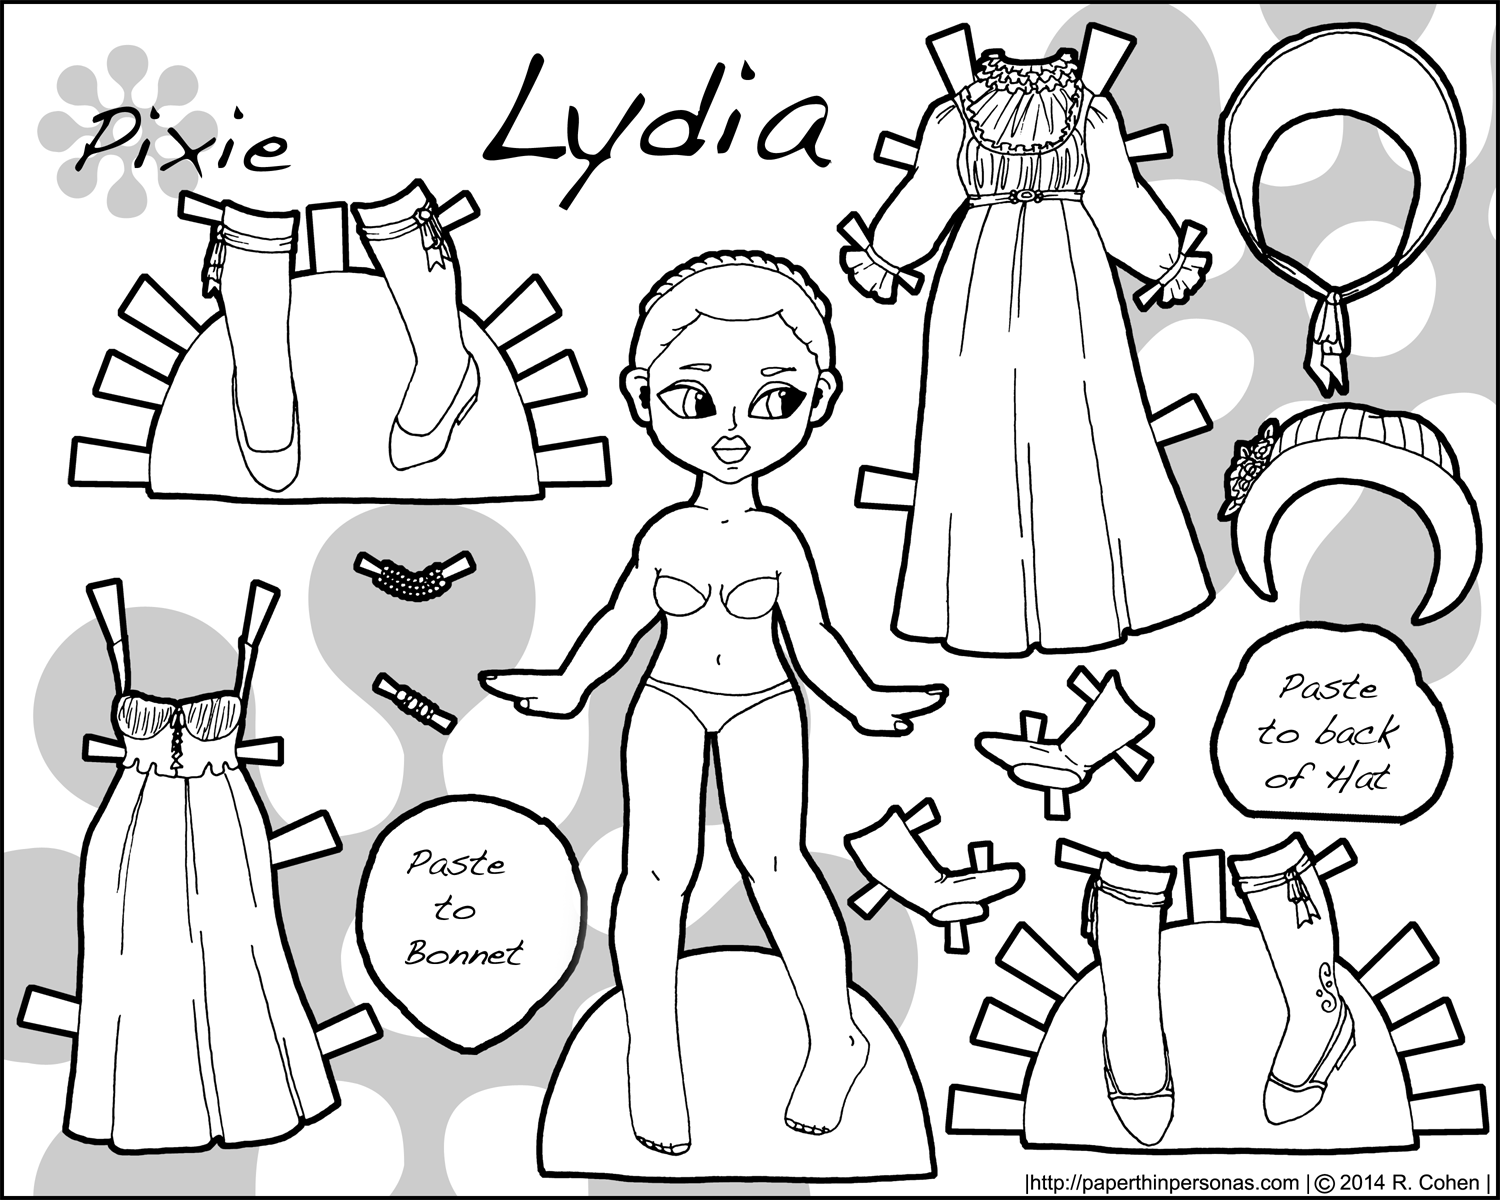 A historical paper doll with regency fashions to color- free to print from paperthinpersonas.com.